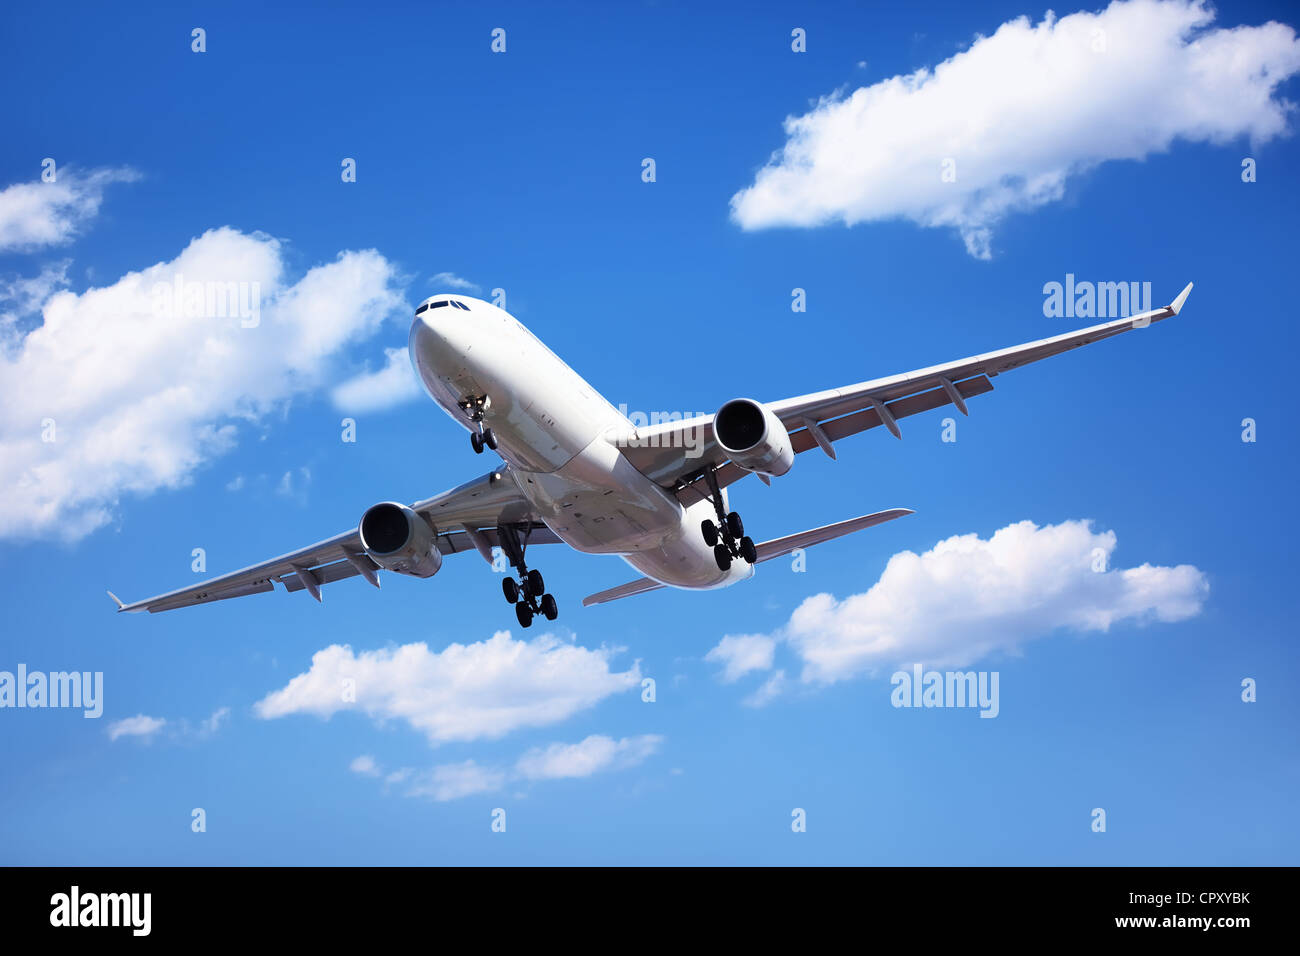 Airplane in the cloudy sky,Passenger Airliner Arrival. - Stock Image